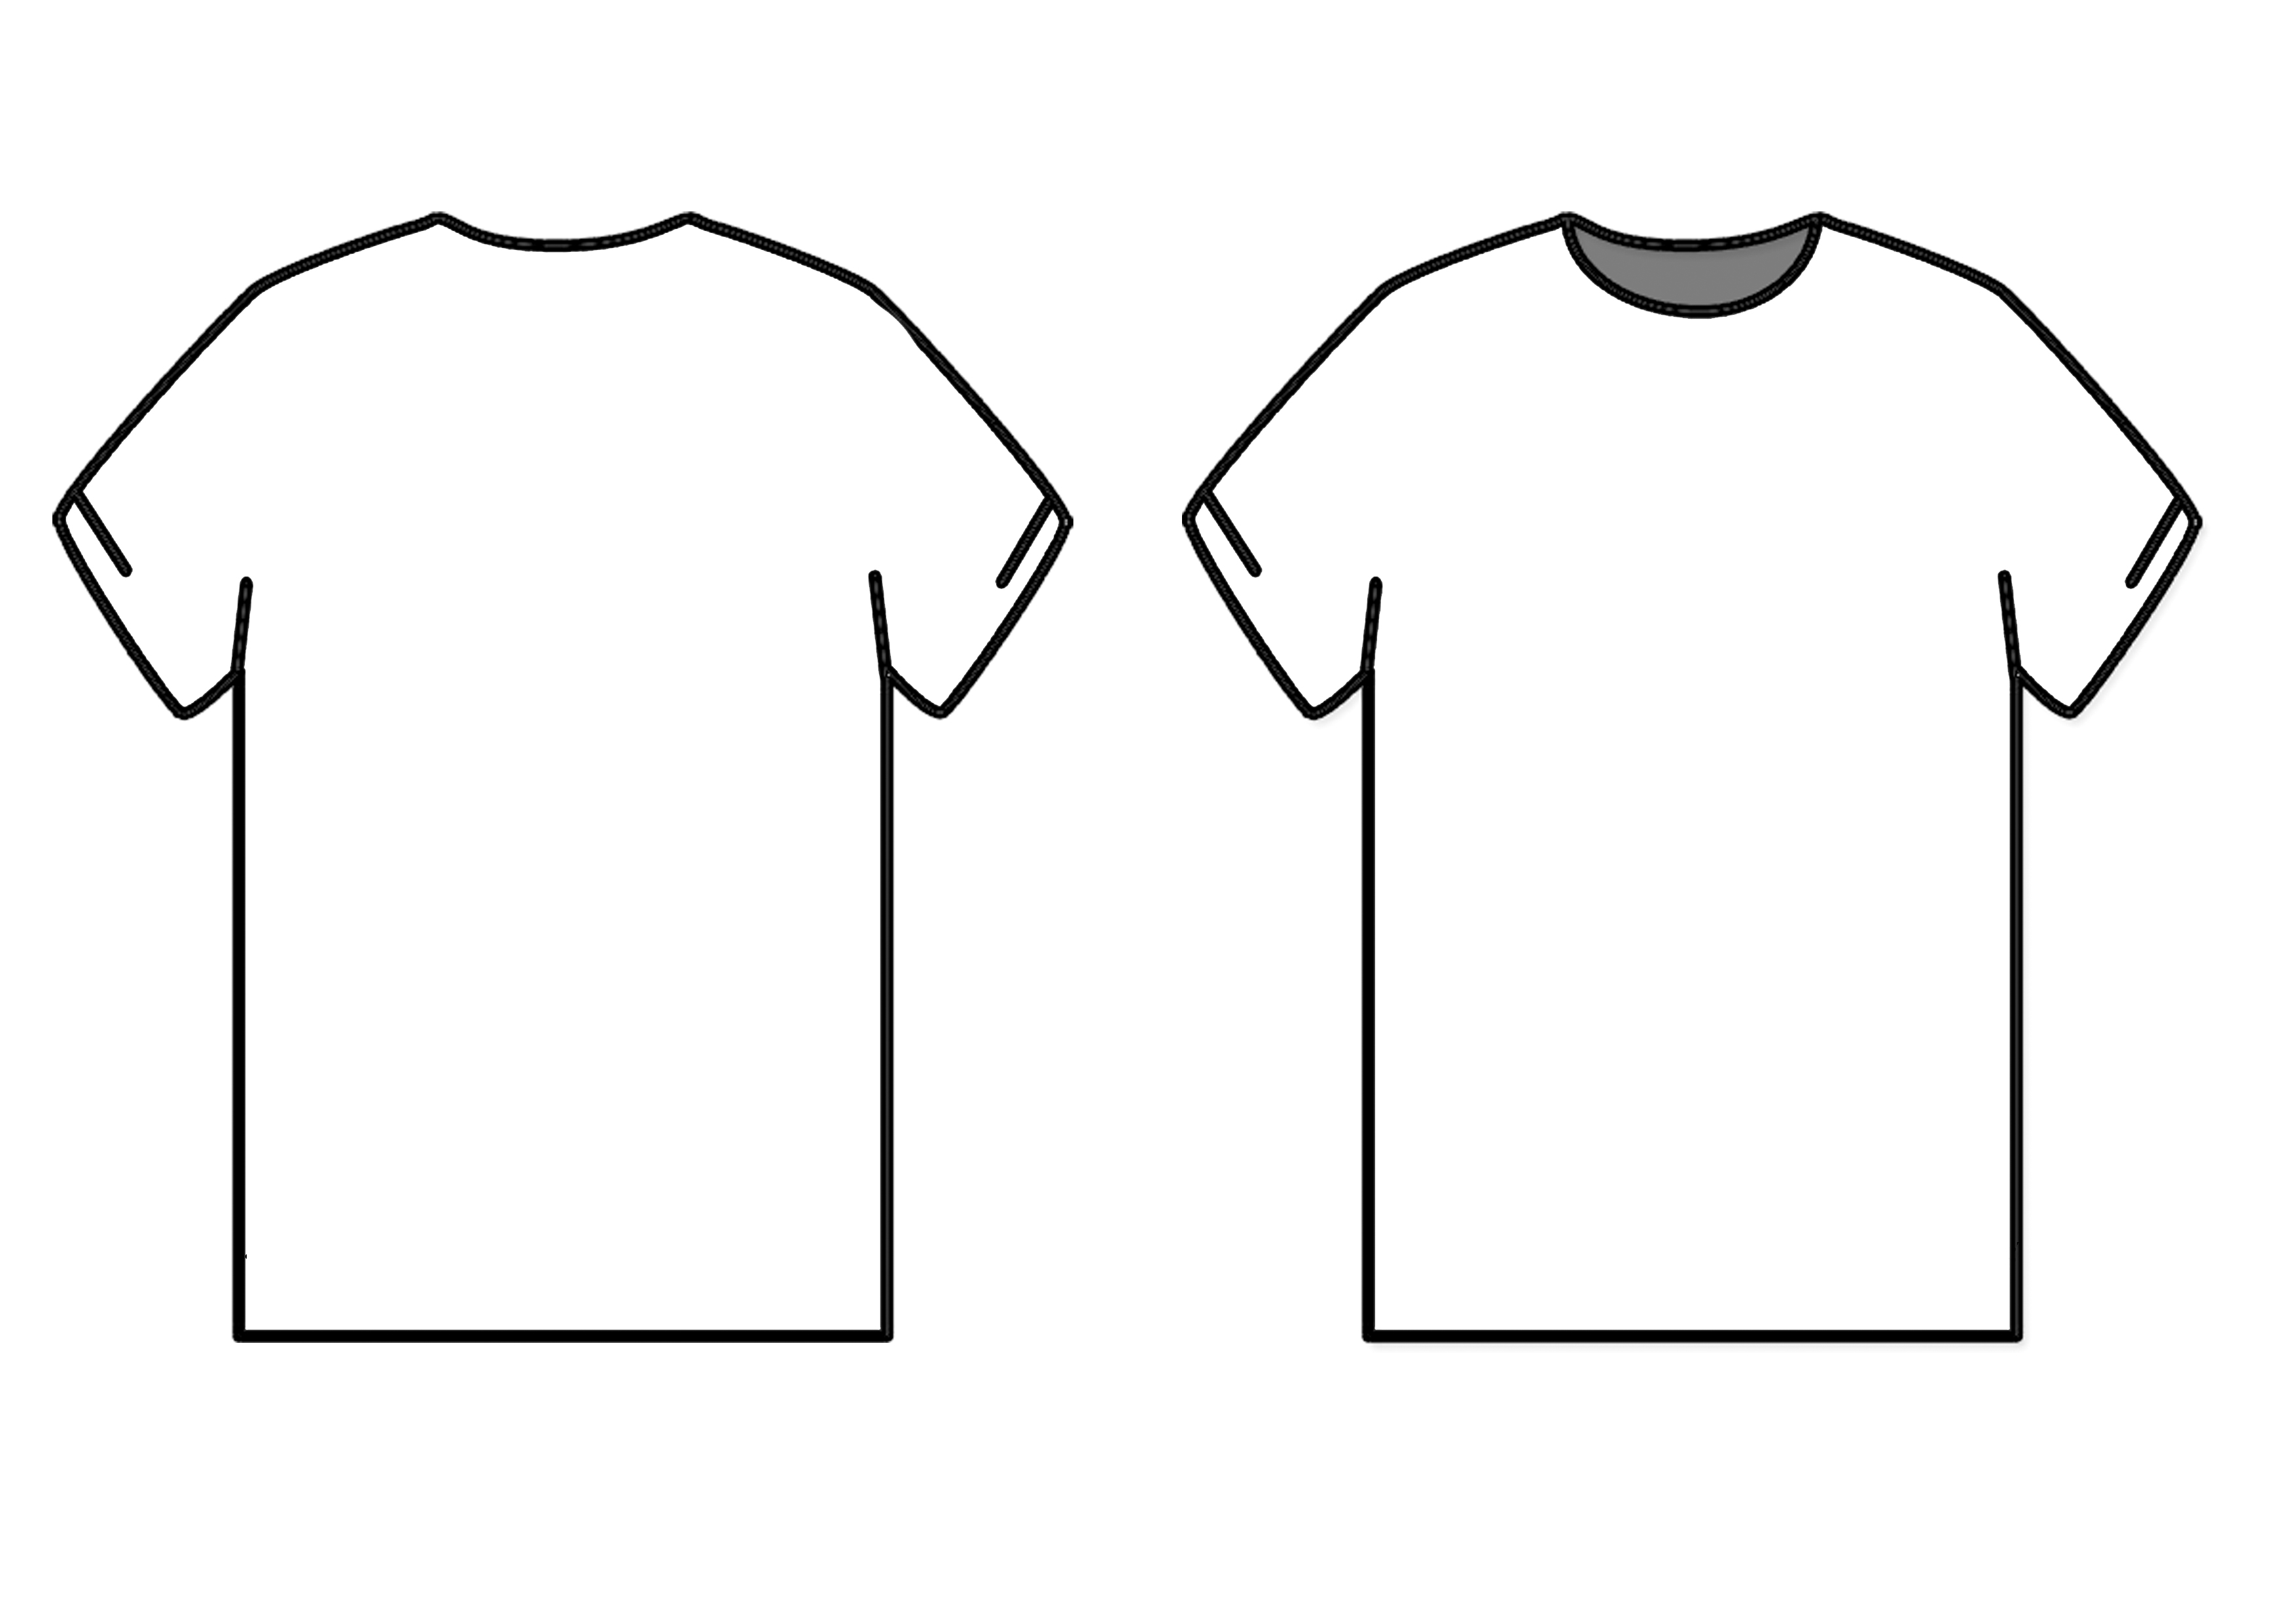 Tshirt mockup clipart graphic library stock Blank T Shirt Outline | Free download best Blank T Shirt Outline on ... graphic library stock